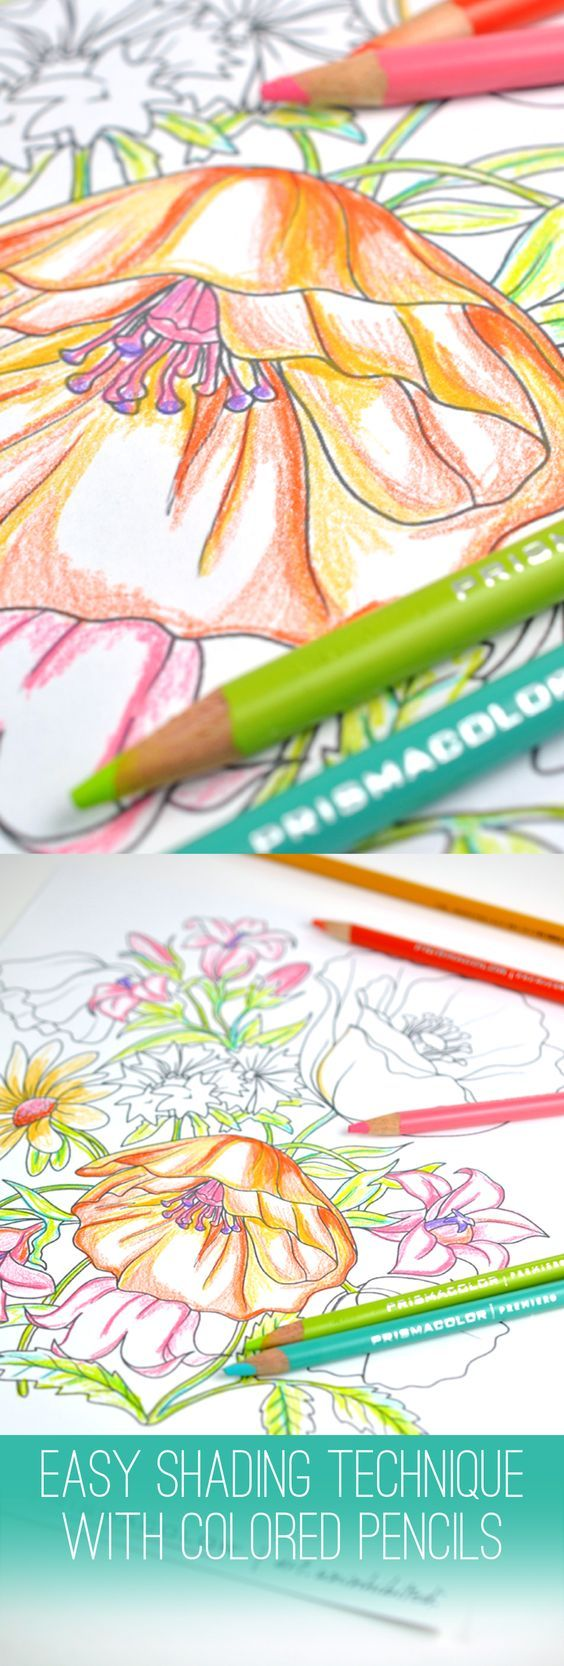 Anti stress colouring book asda - Create Beautiful Shading On Your Coloring Pages By Using Two Different Colors In The Same Color